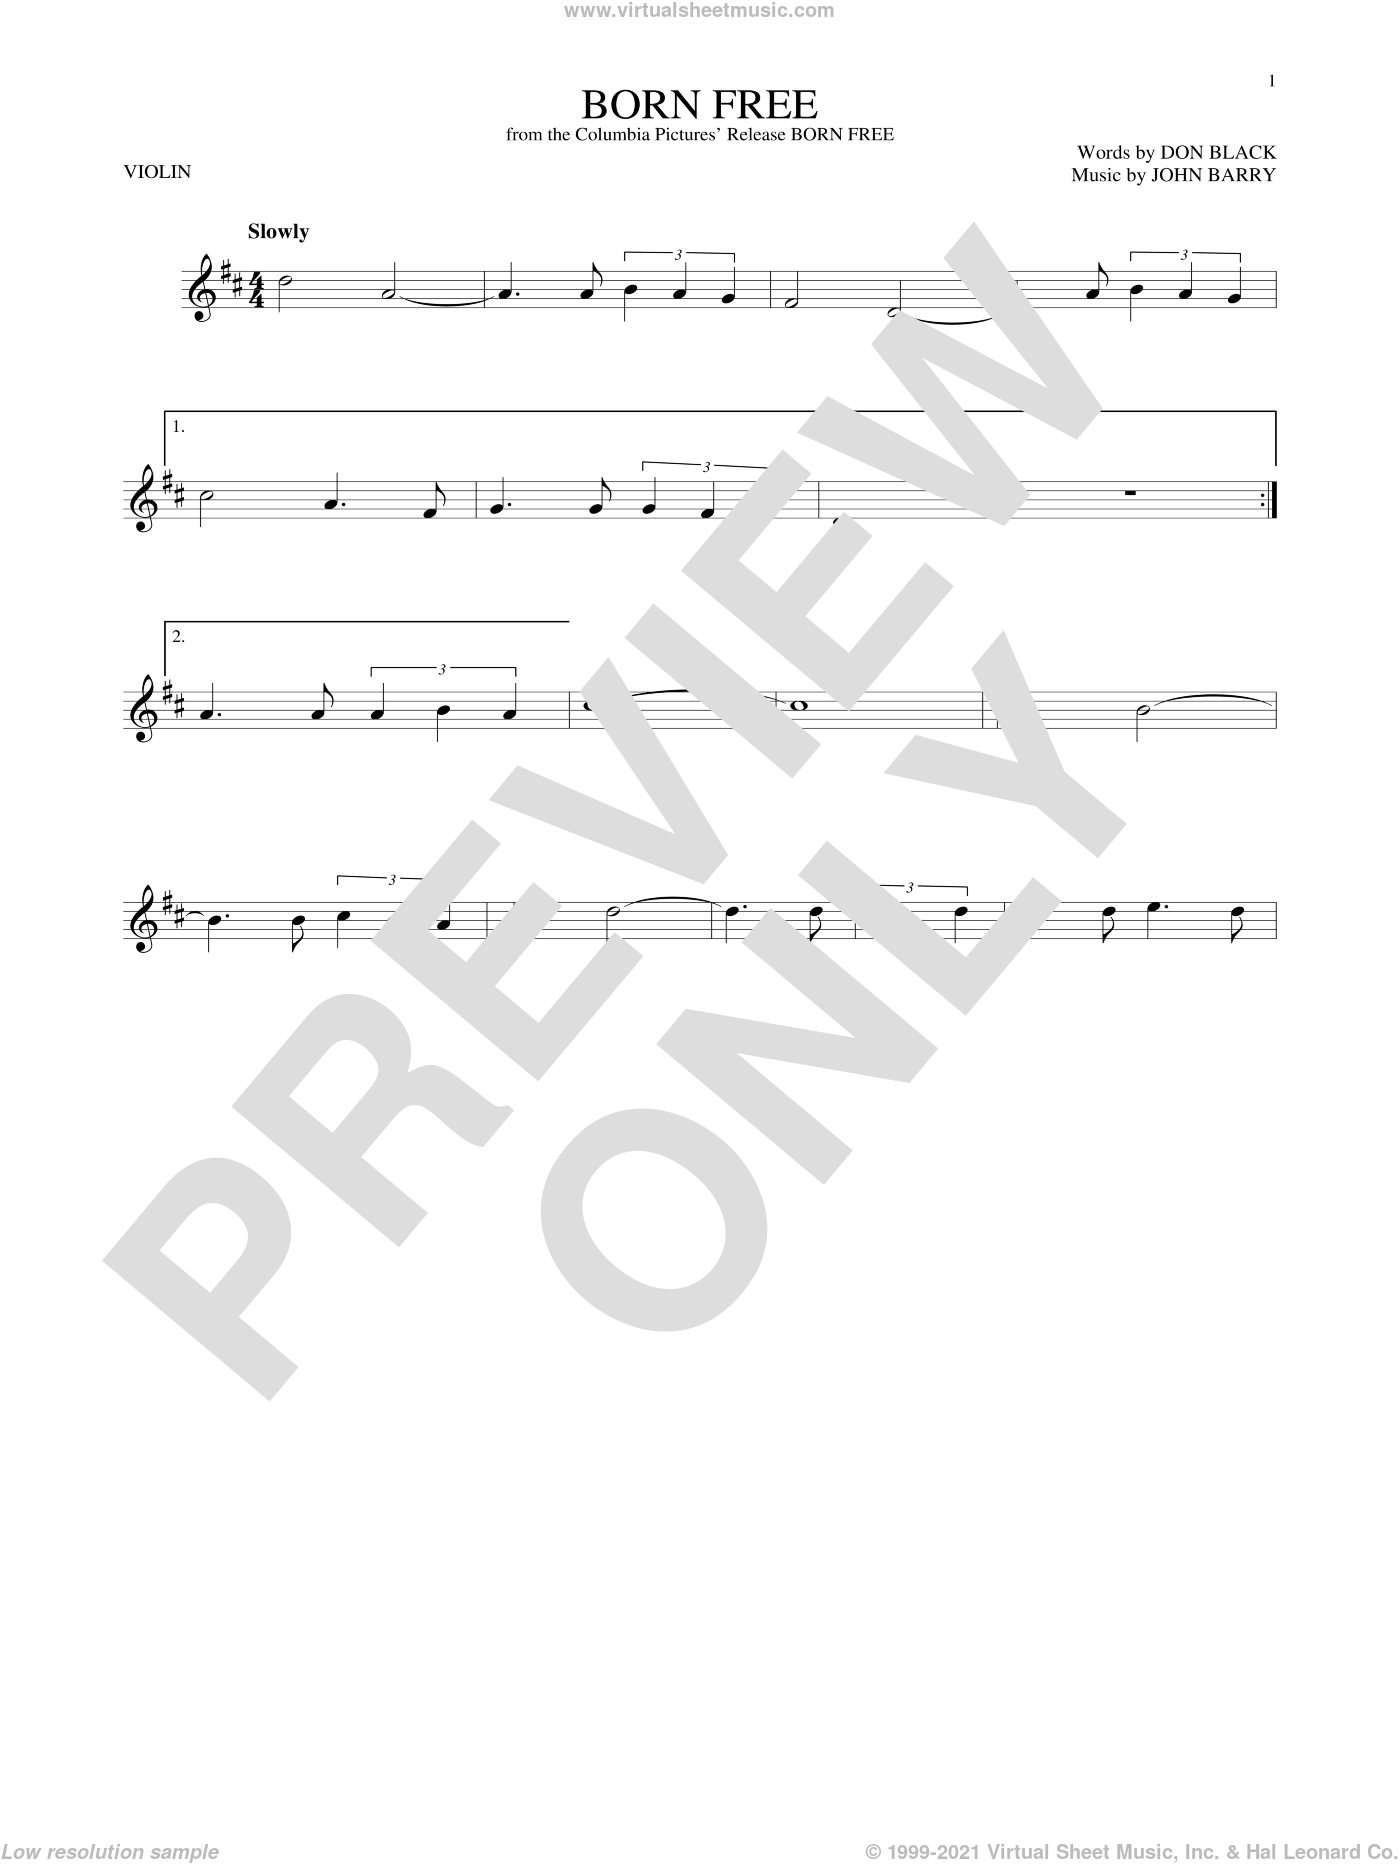 Born Free sheet music for violin solo by Don Black, Roger Williams and John Barry, intermediate skill level